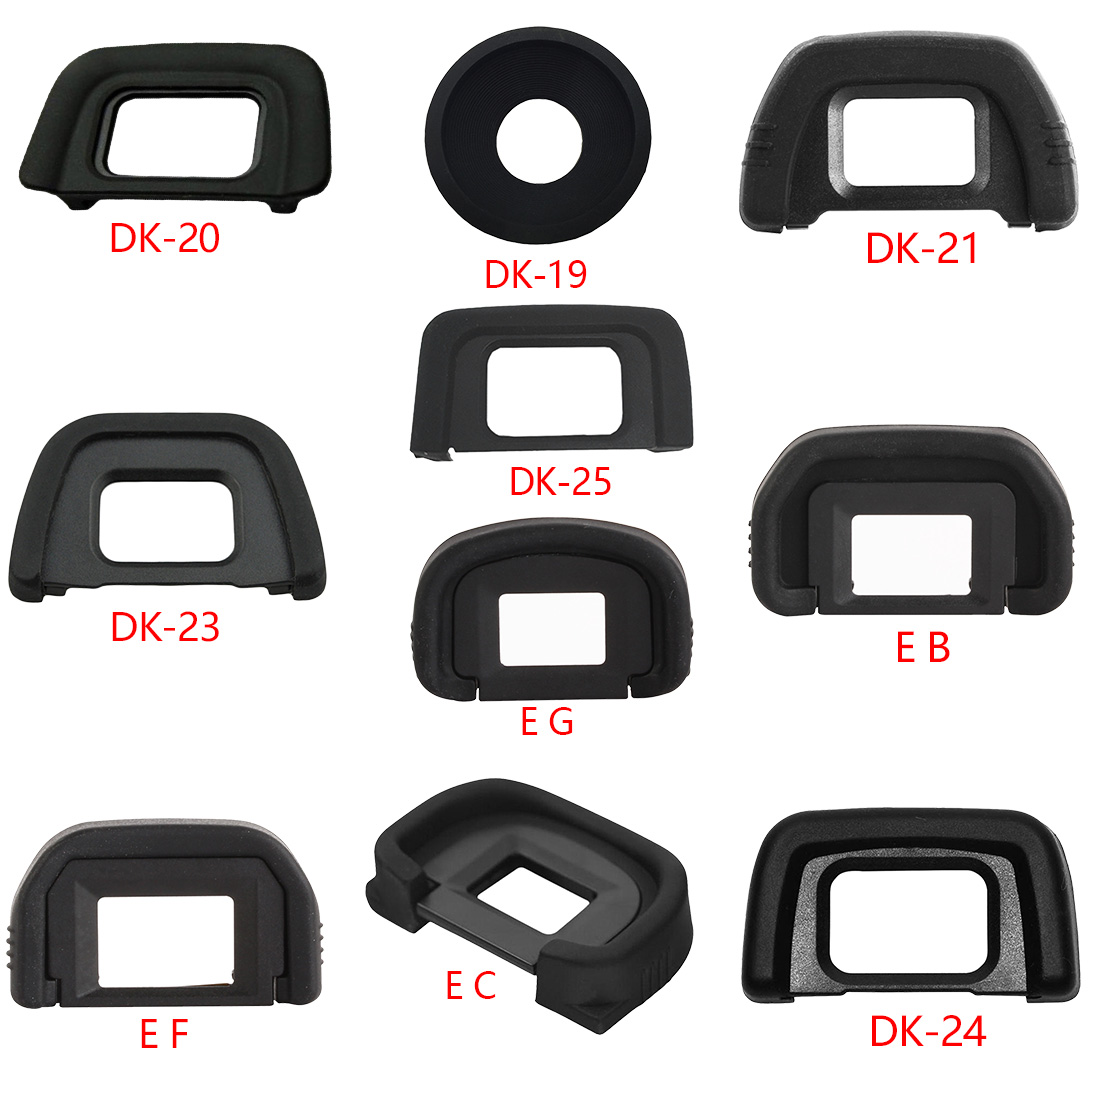 Eye-Cup Eyepiece Rubber Came DK-20 Nikon EG DK-19 Canon Slr EF EB for High-Quality New-Arrival